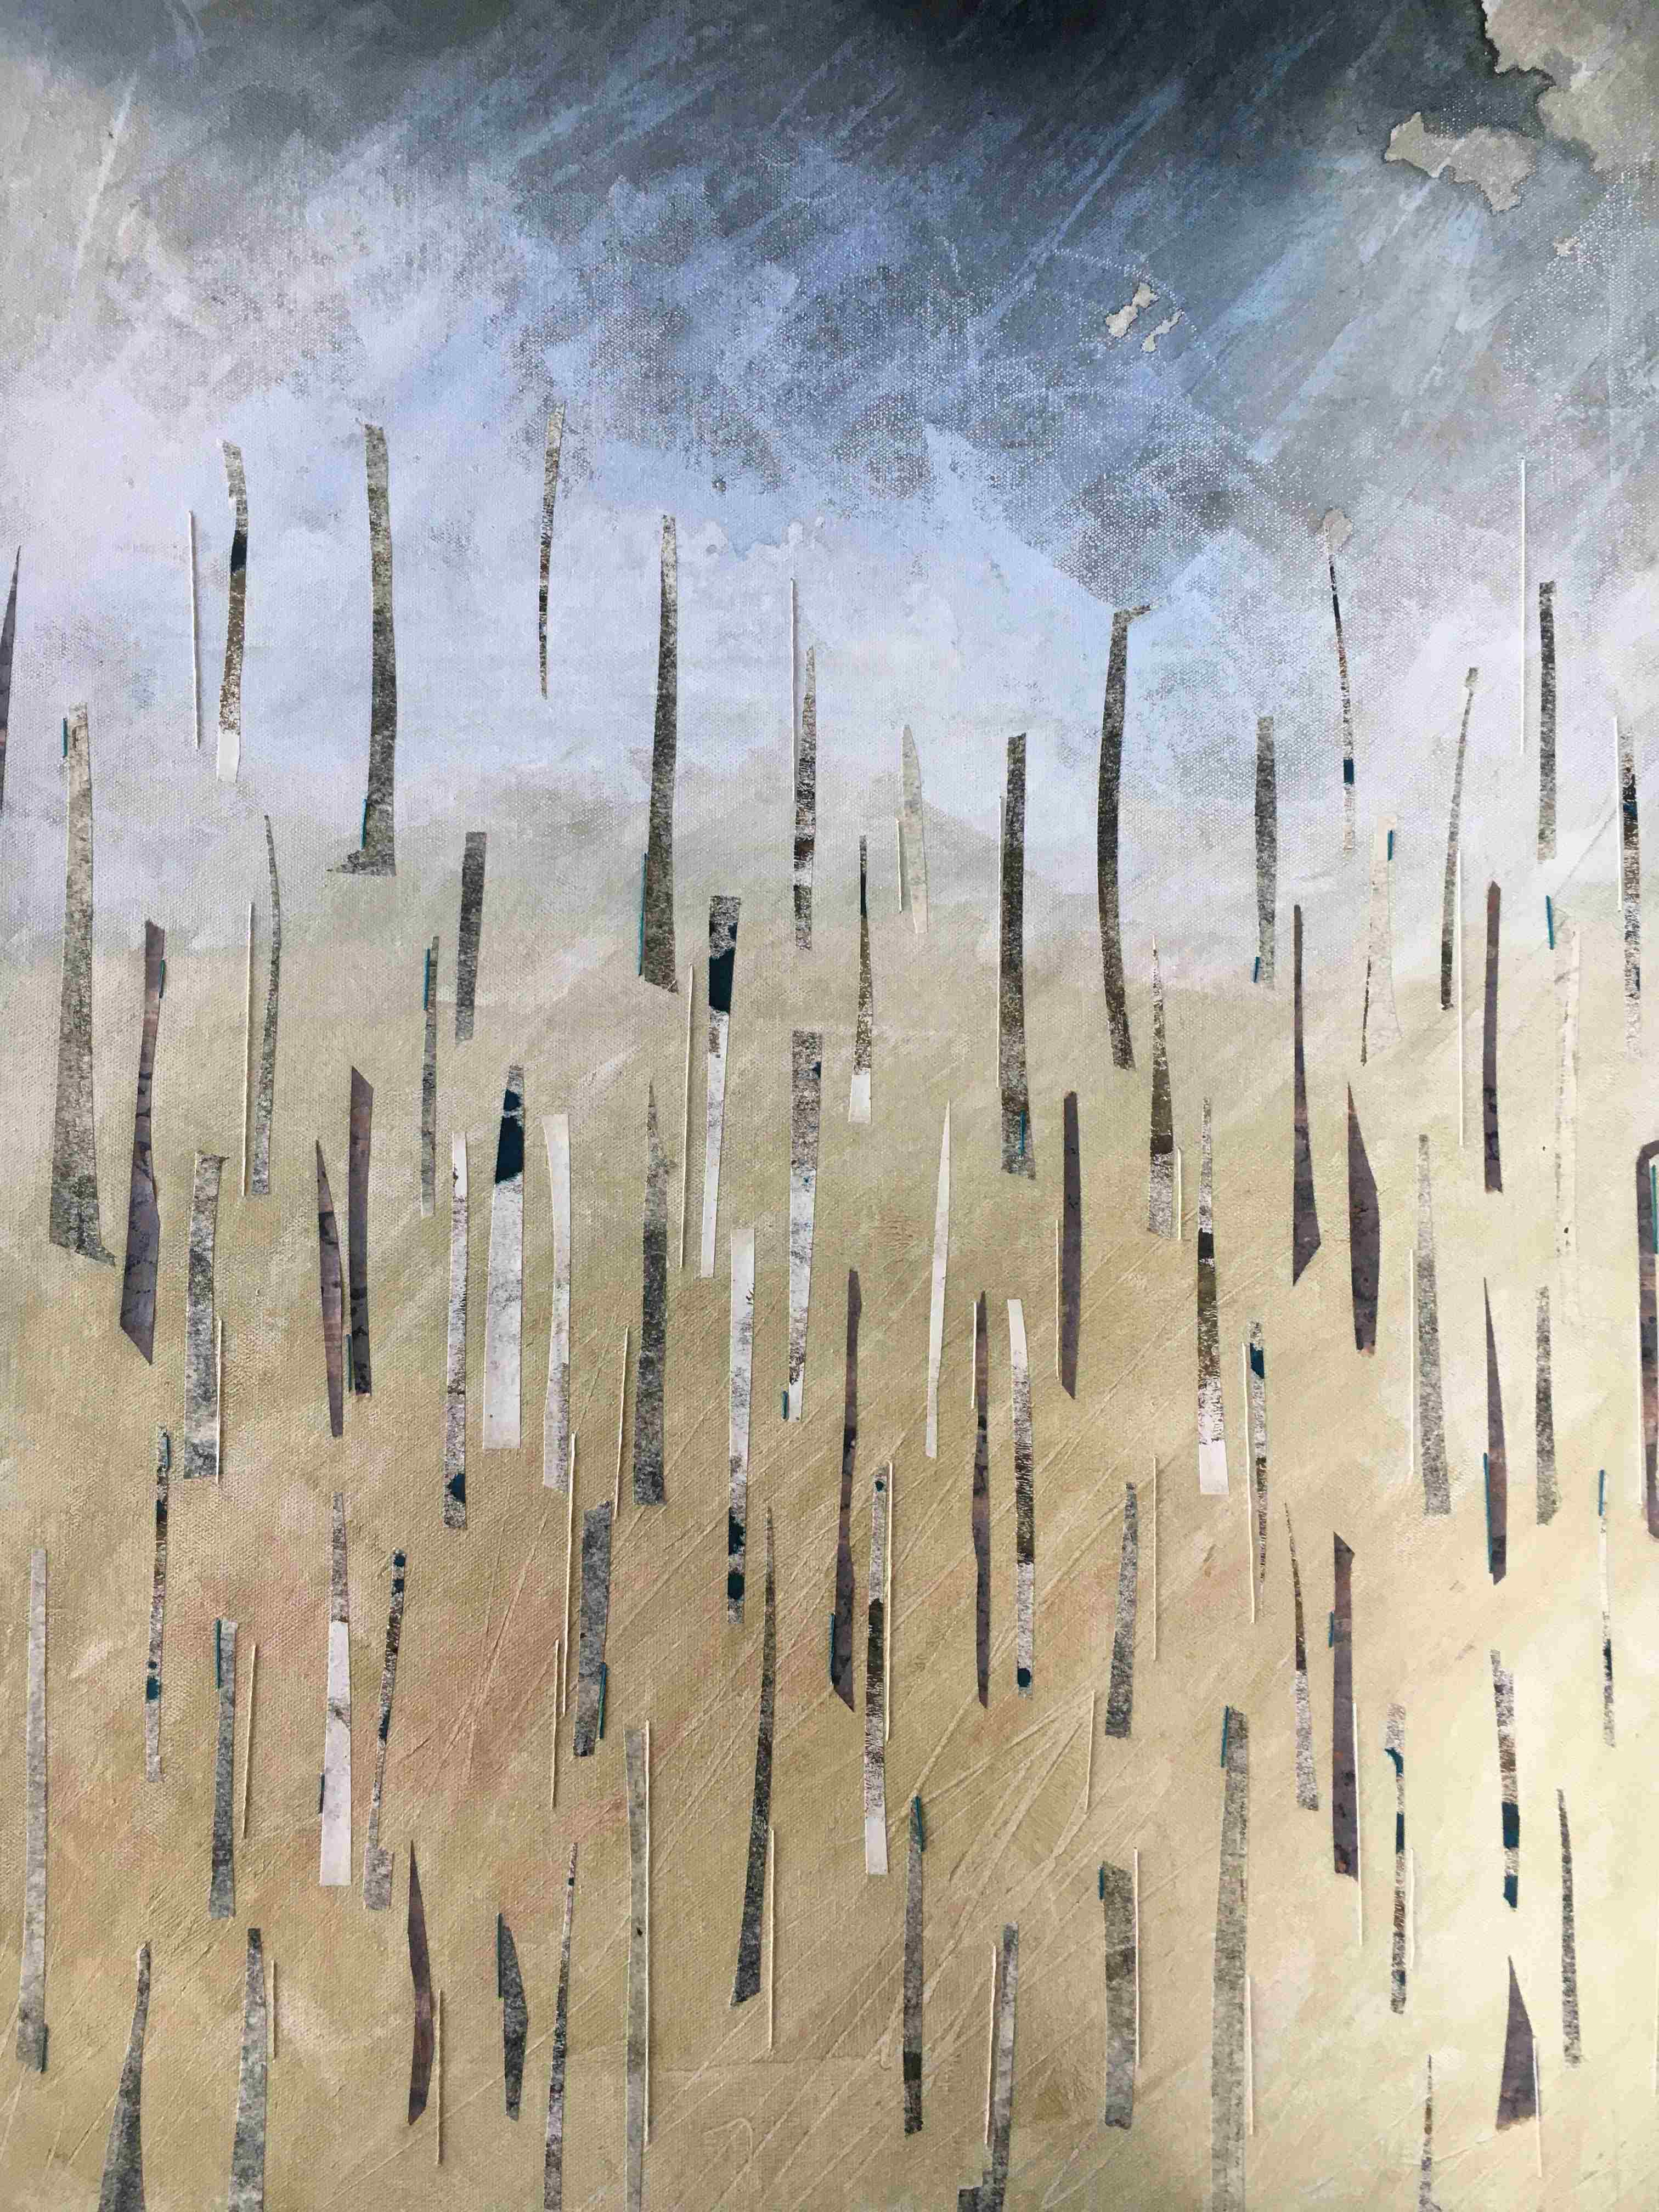 Mixed media and embroidery on canvas abstract landscape